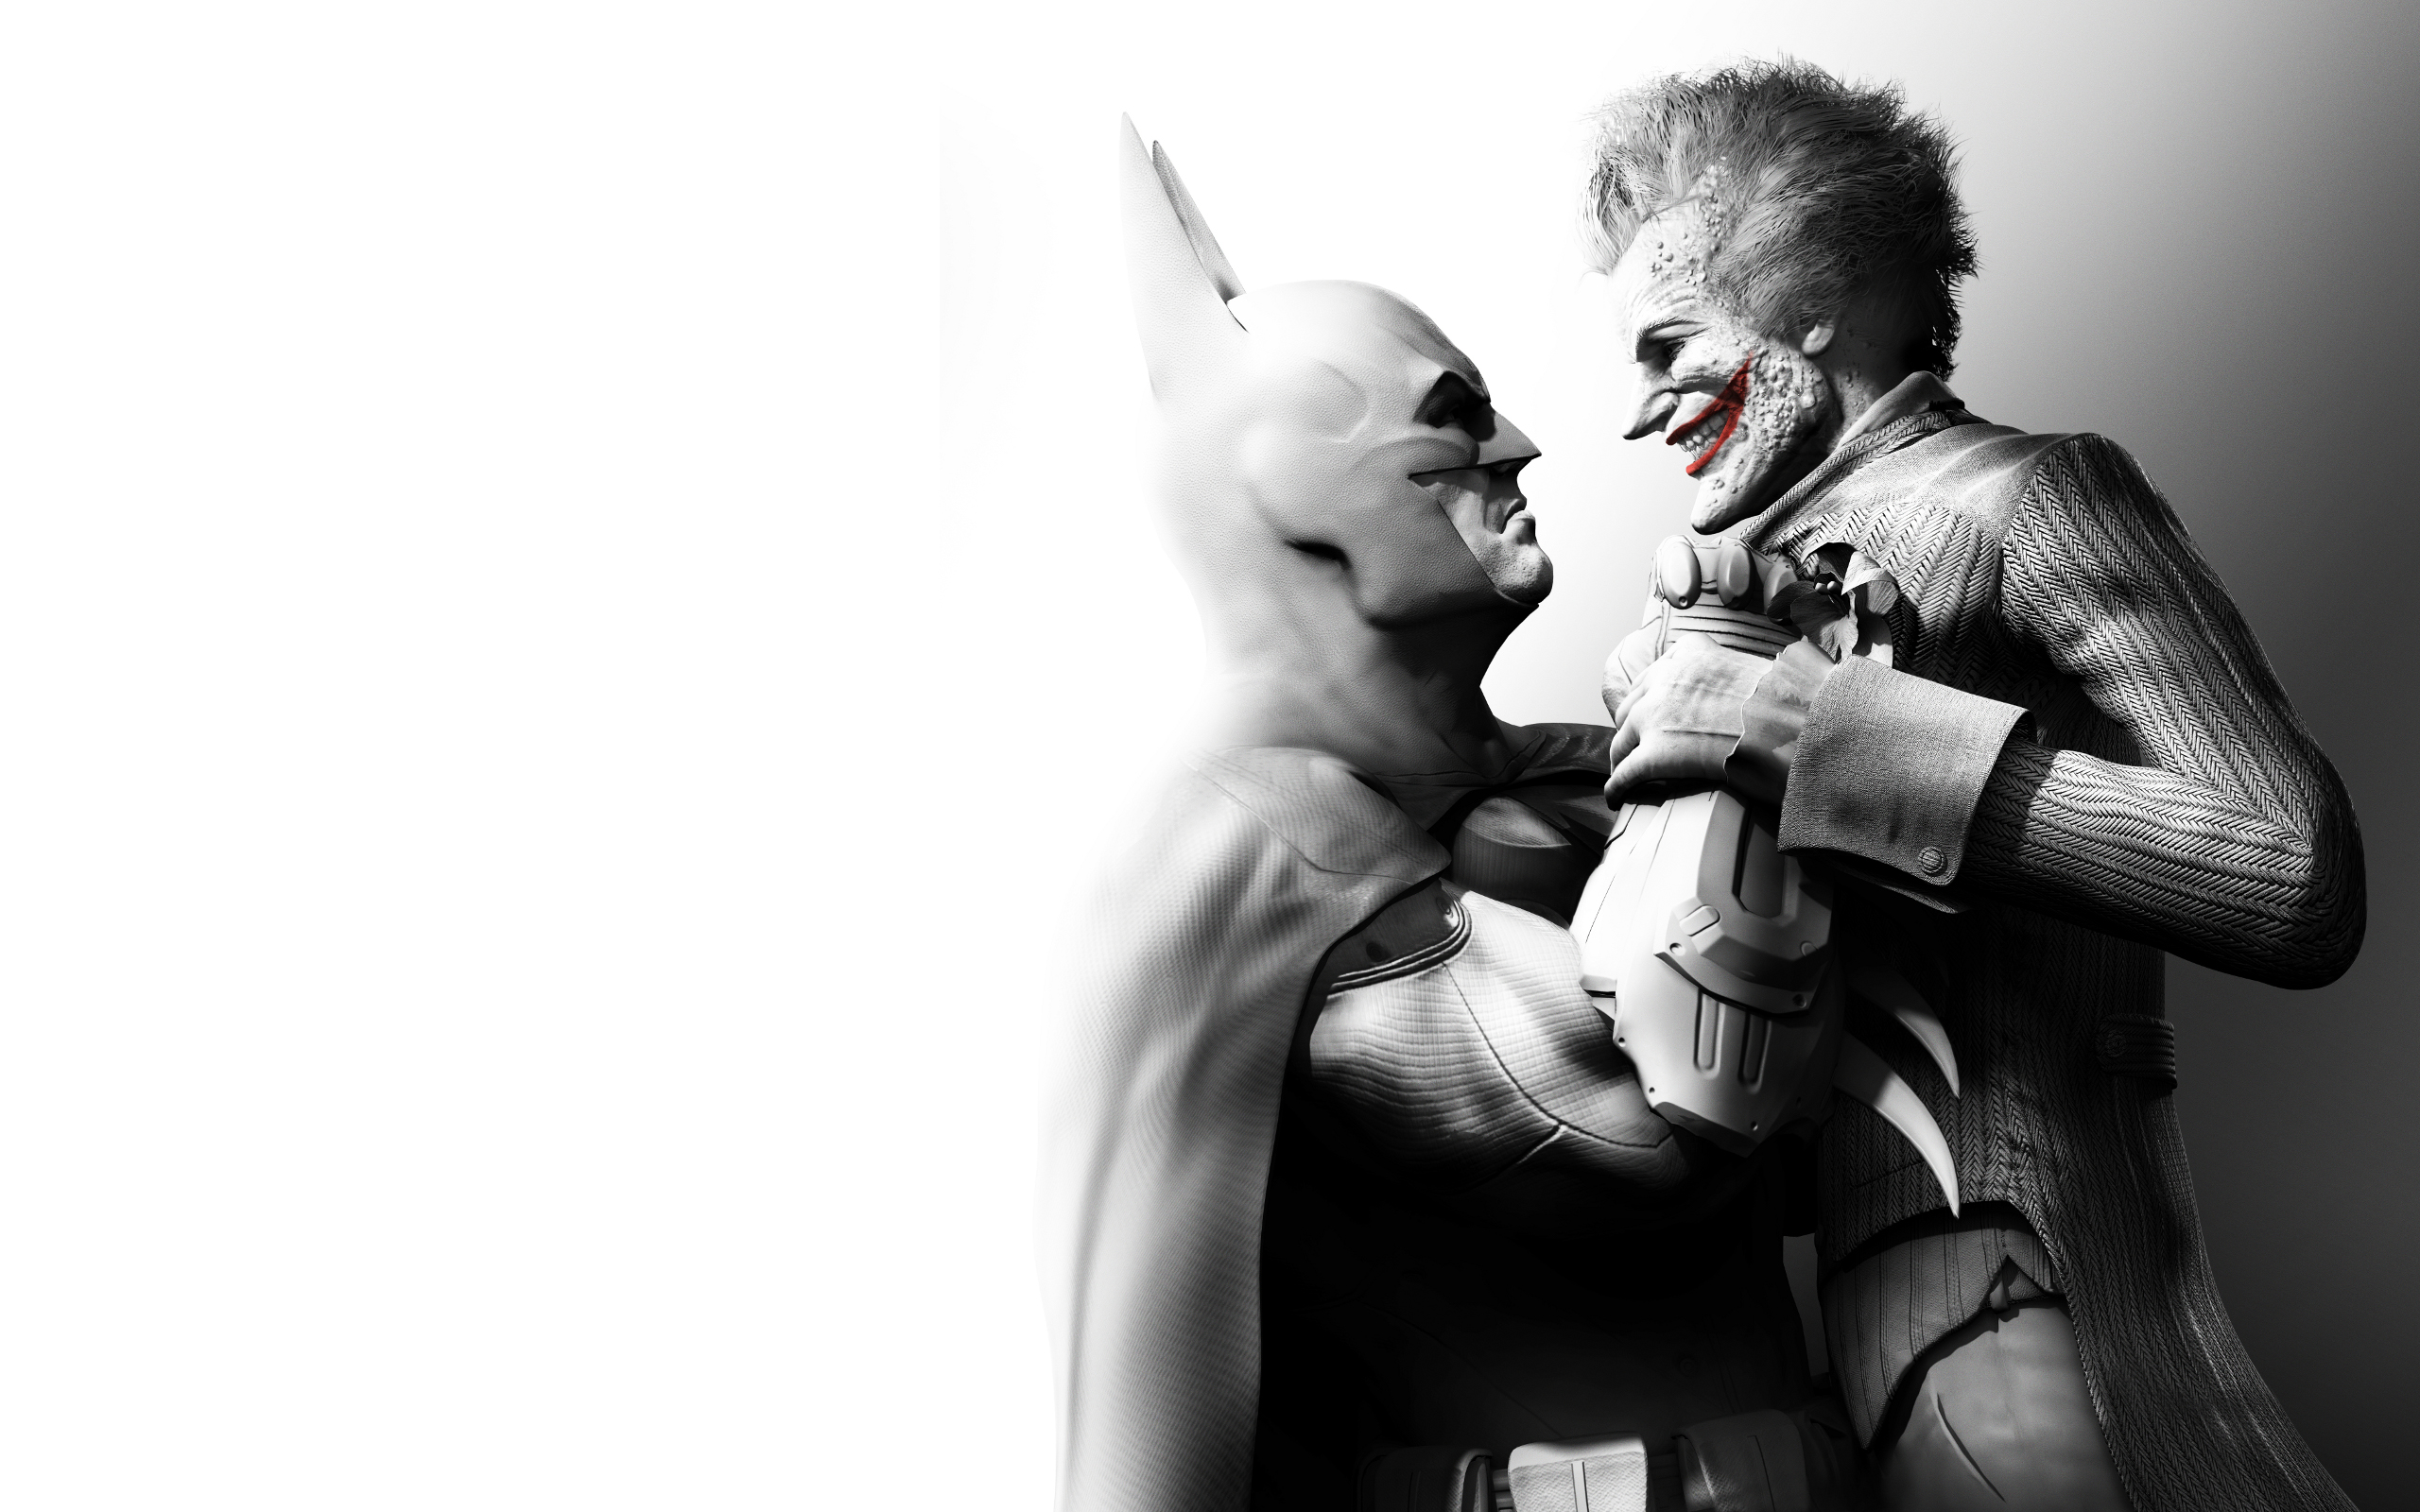 Batman Arkham City Harley Quinn Joker Superhero HD Wallpaper